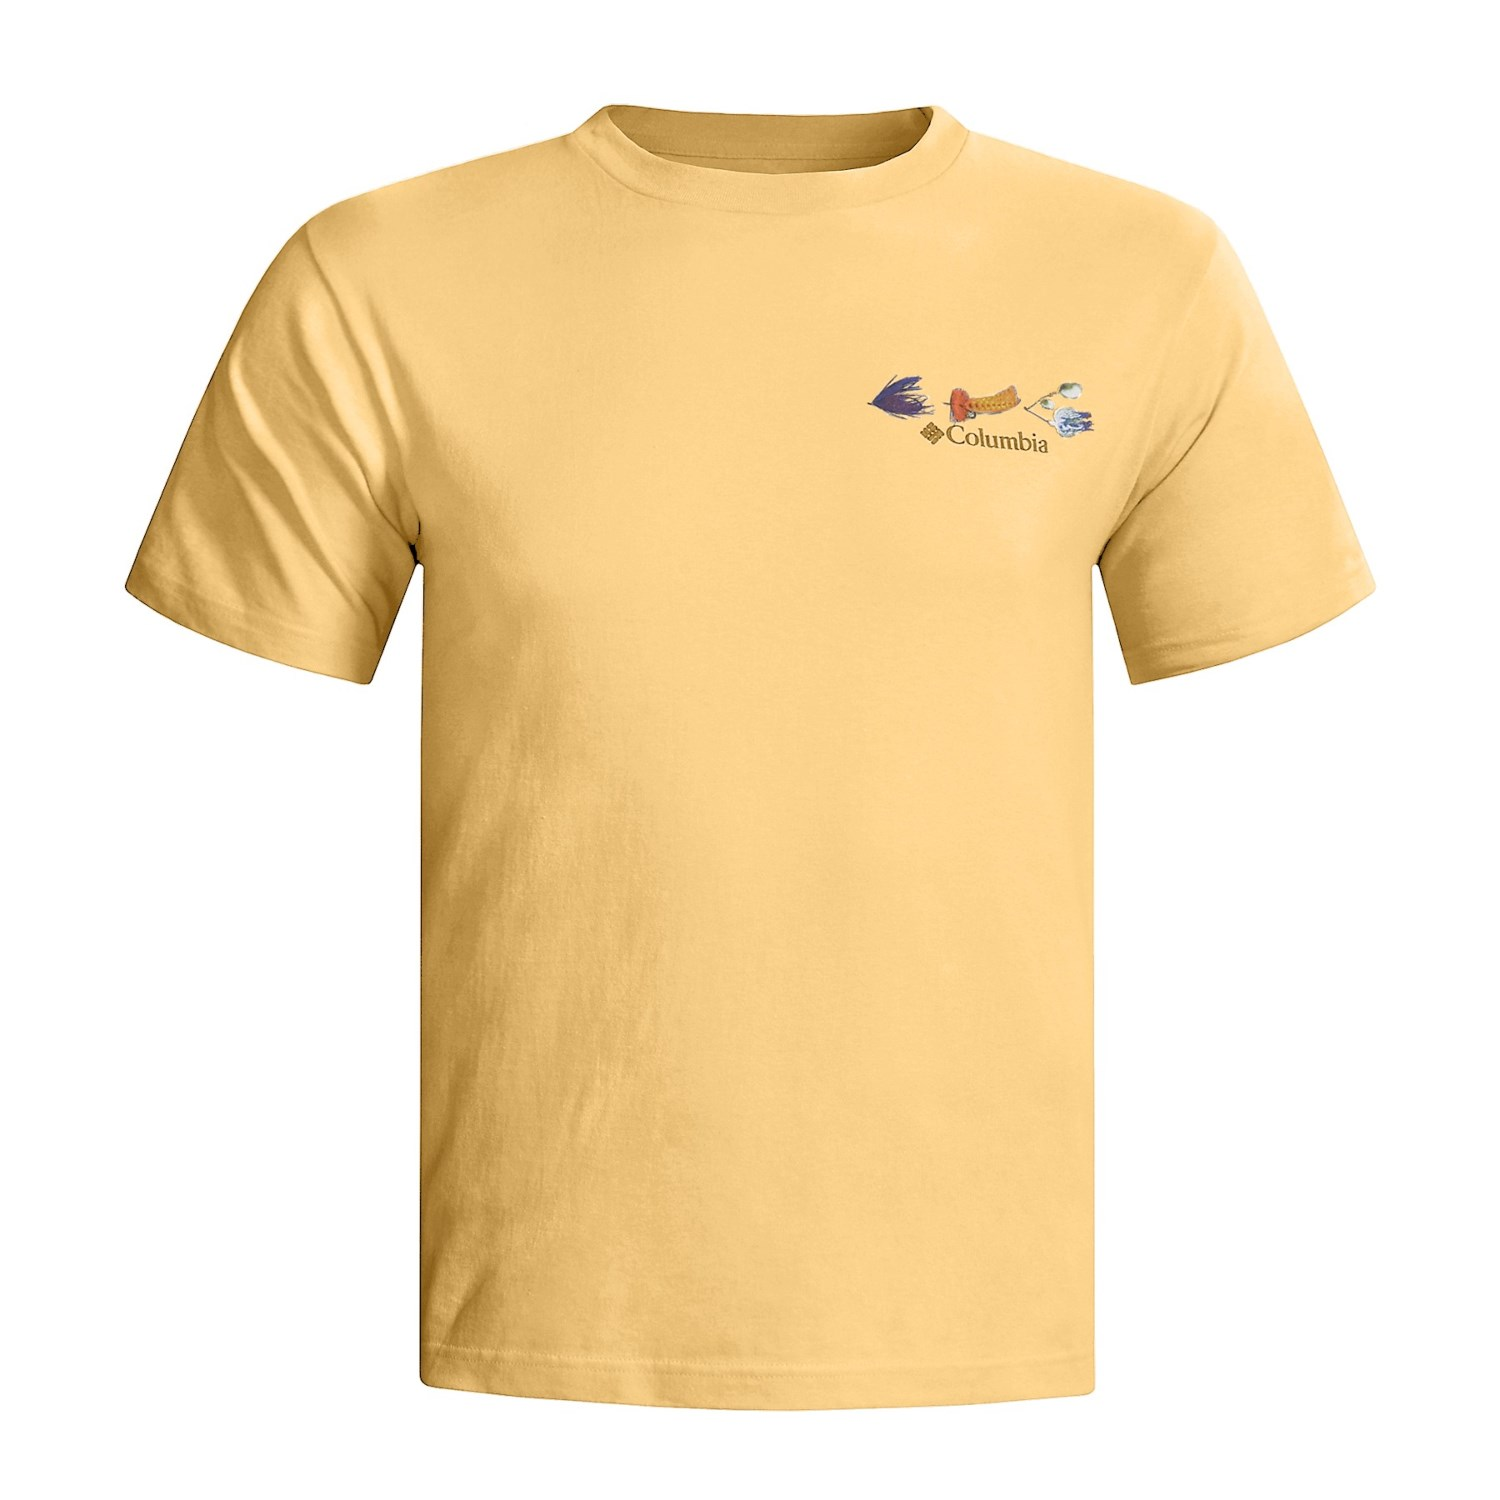 Columbia t shirt for Design your own t shirt big and tall